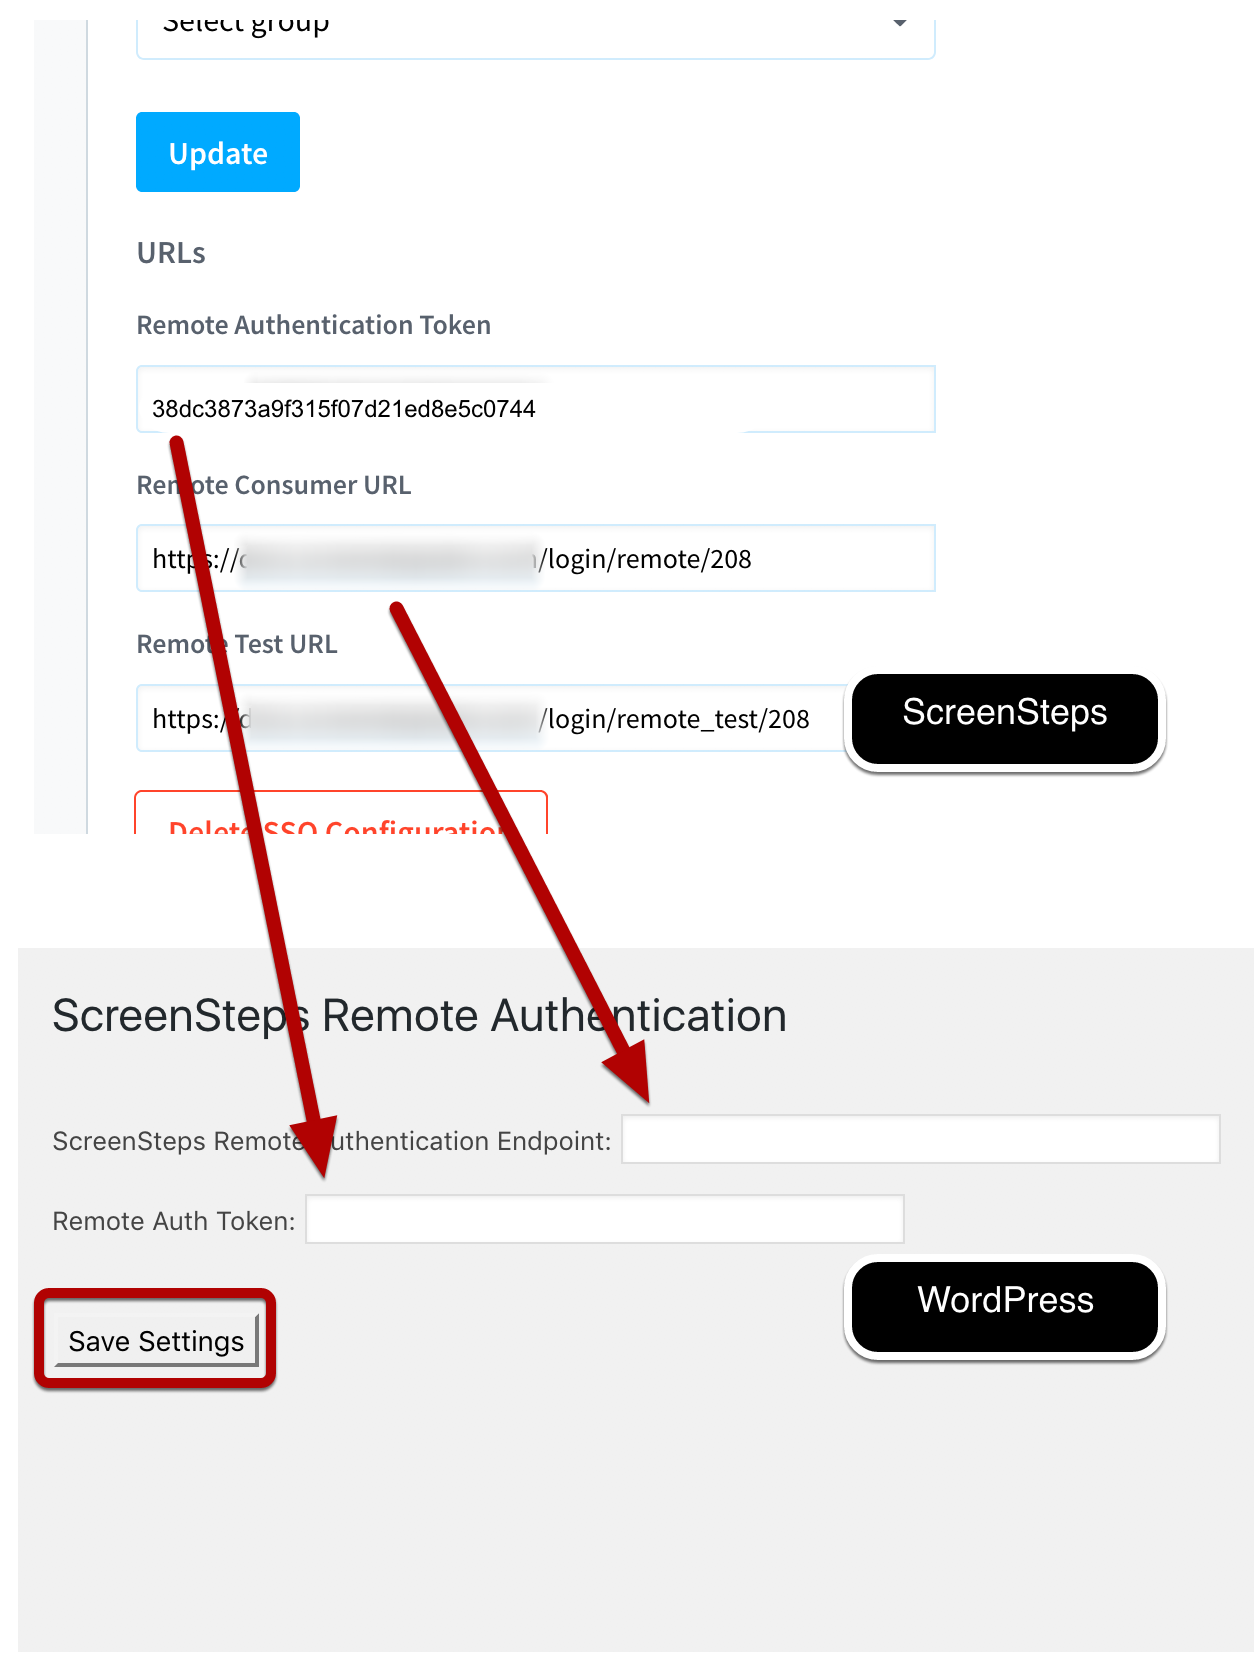 Add Remote Authentication Token and Remote Consumer URL to WordPress Plugin